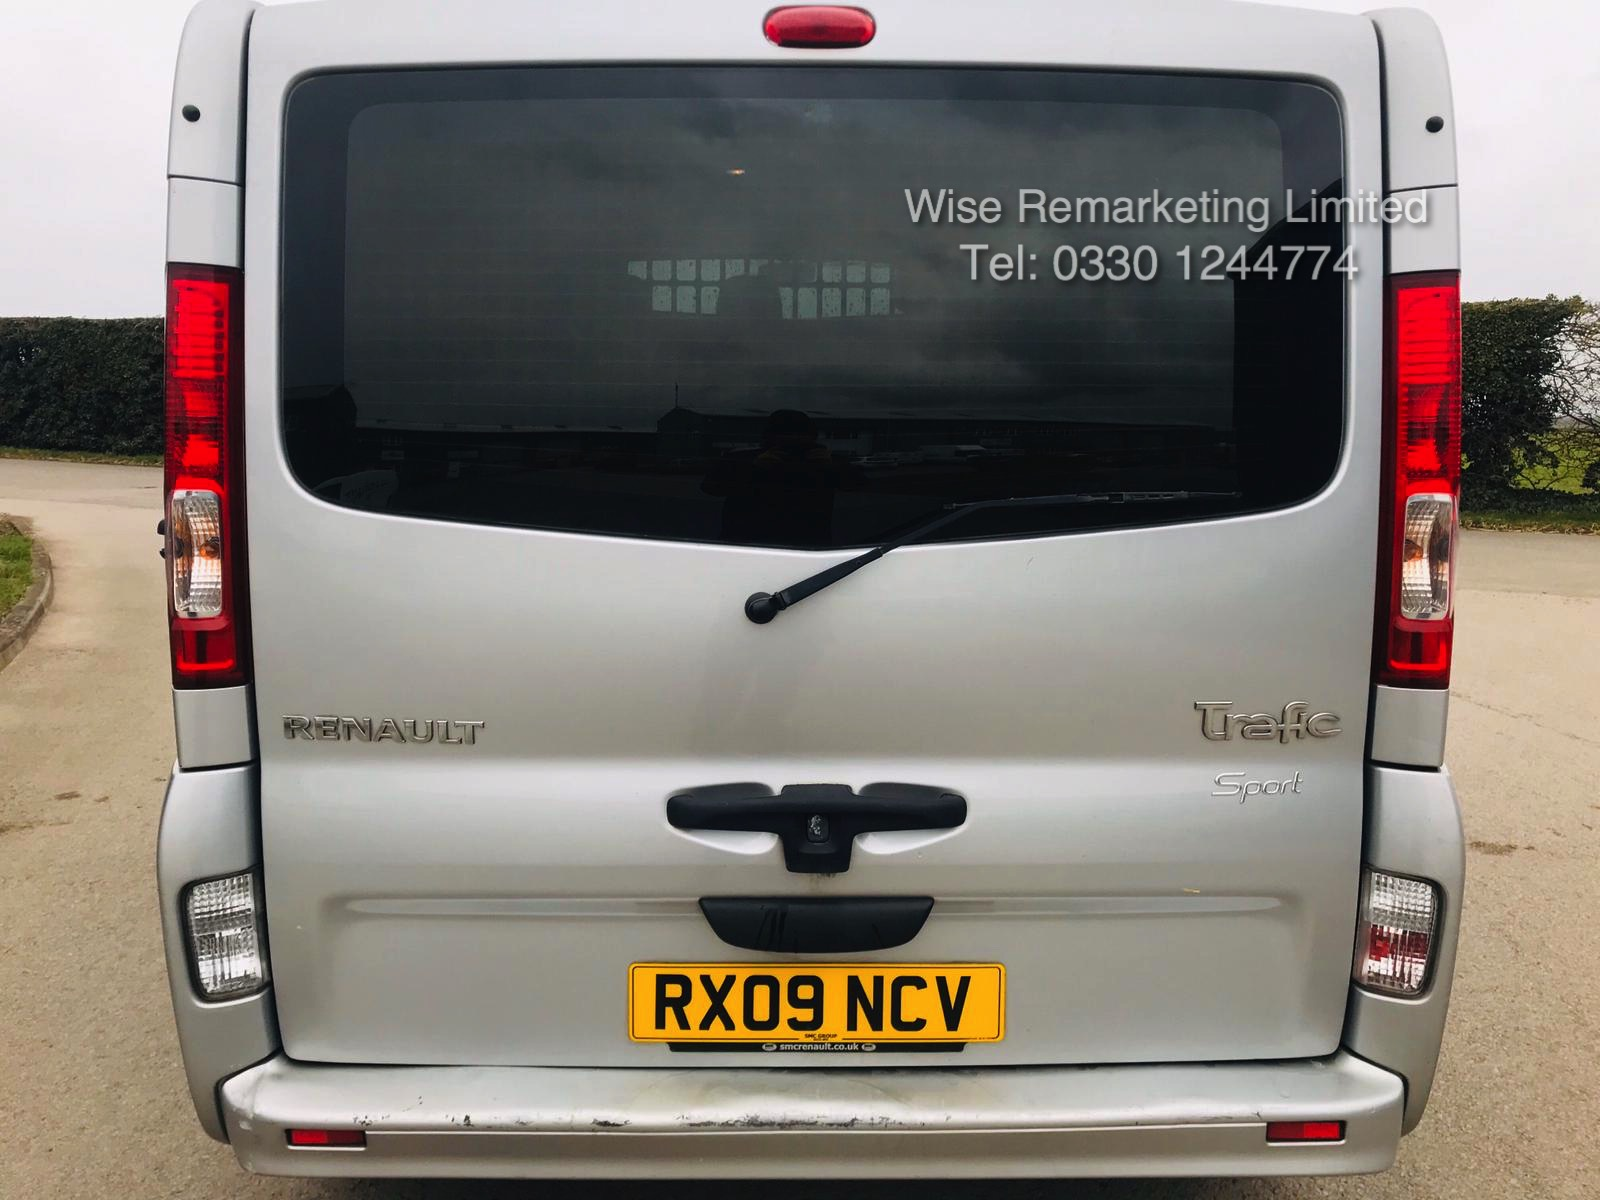 Renault Trafic Sport 2.0 DCI (115 BHP) **Automatic** - 2009 09 Reg - Air Con - Ply lined - Image 4 of 16